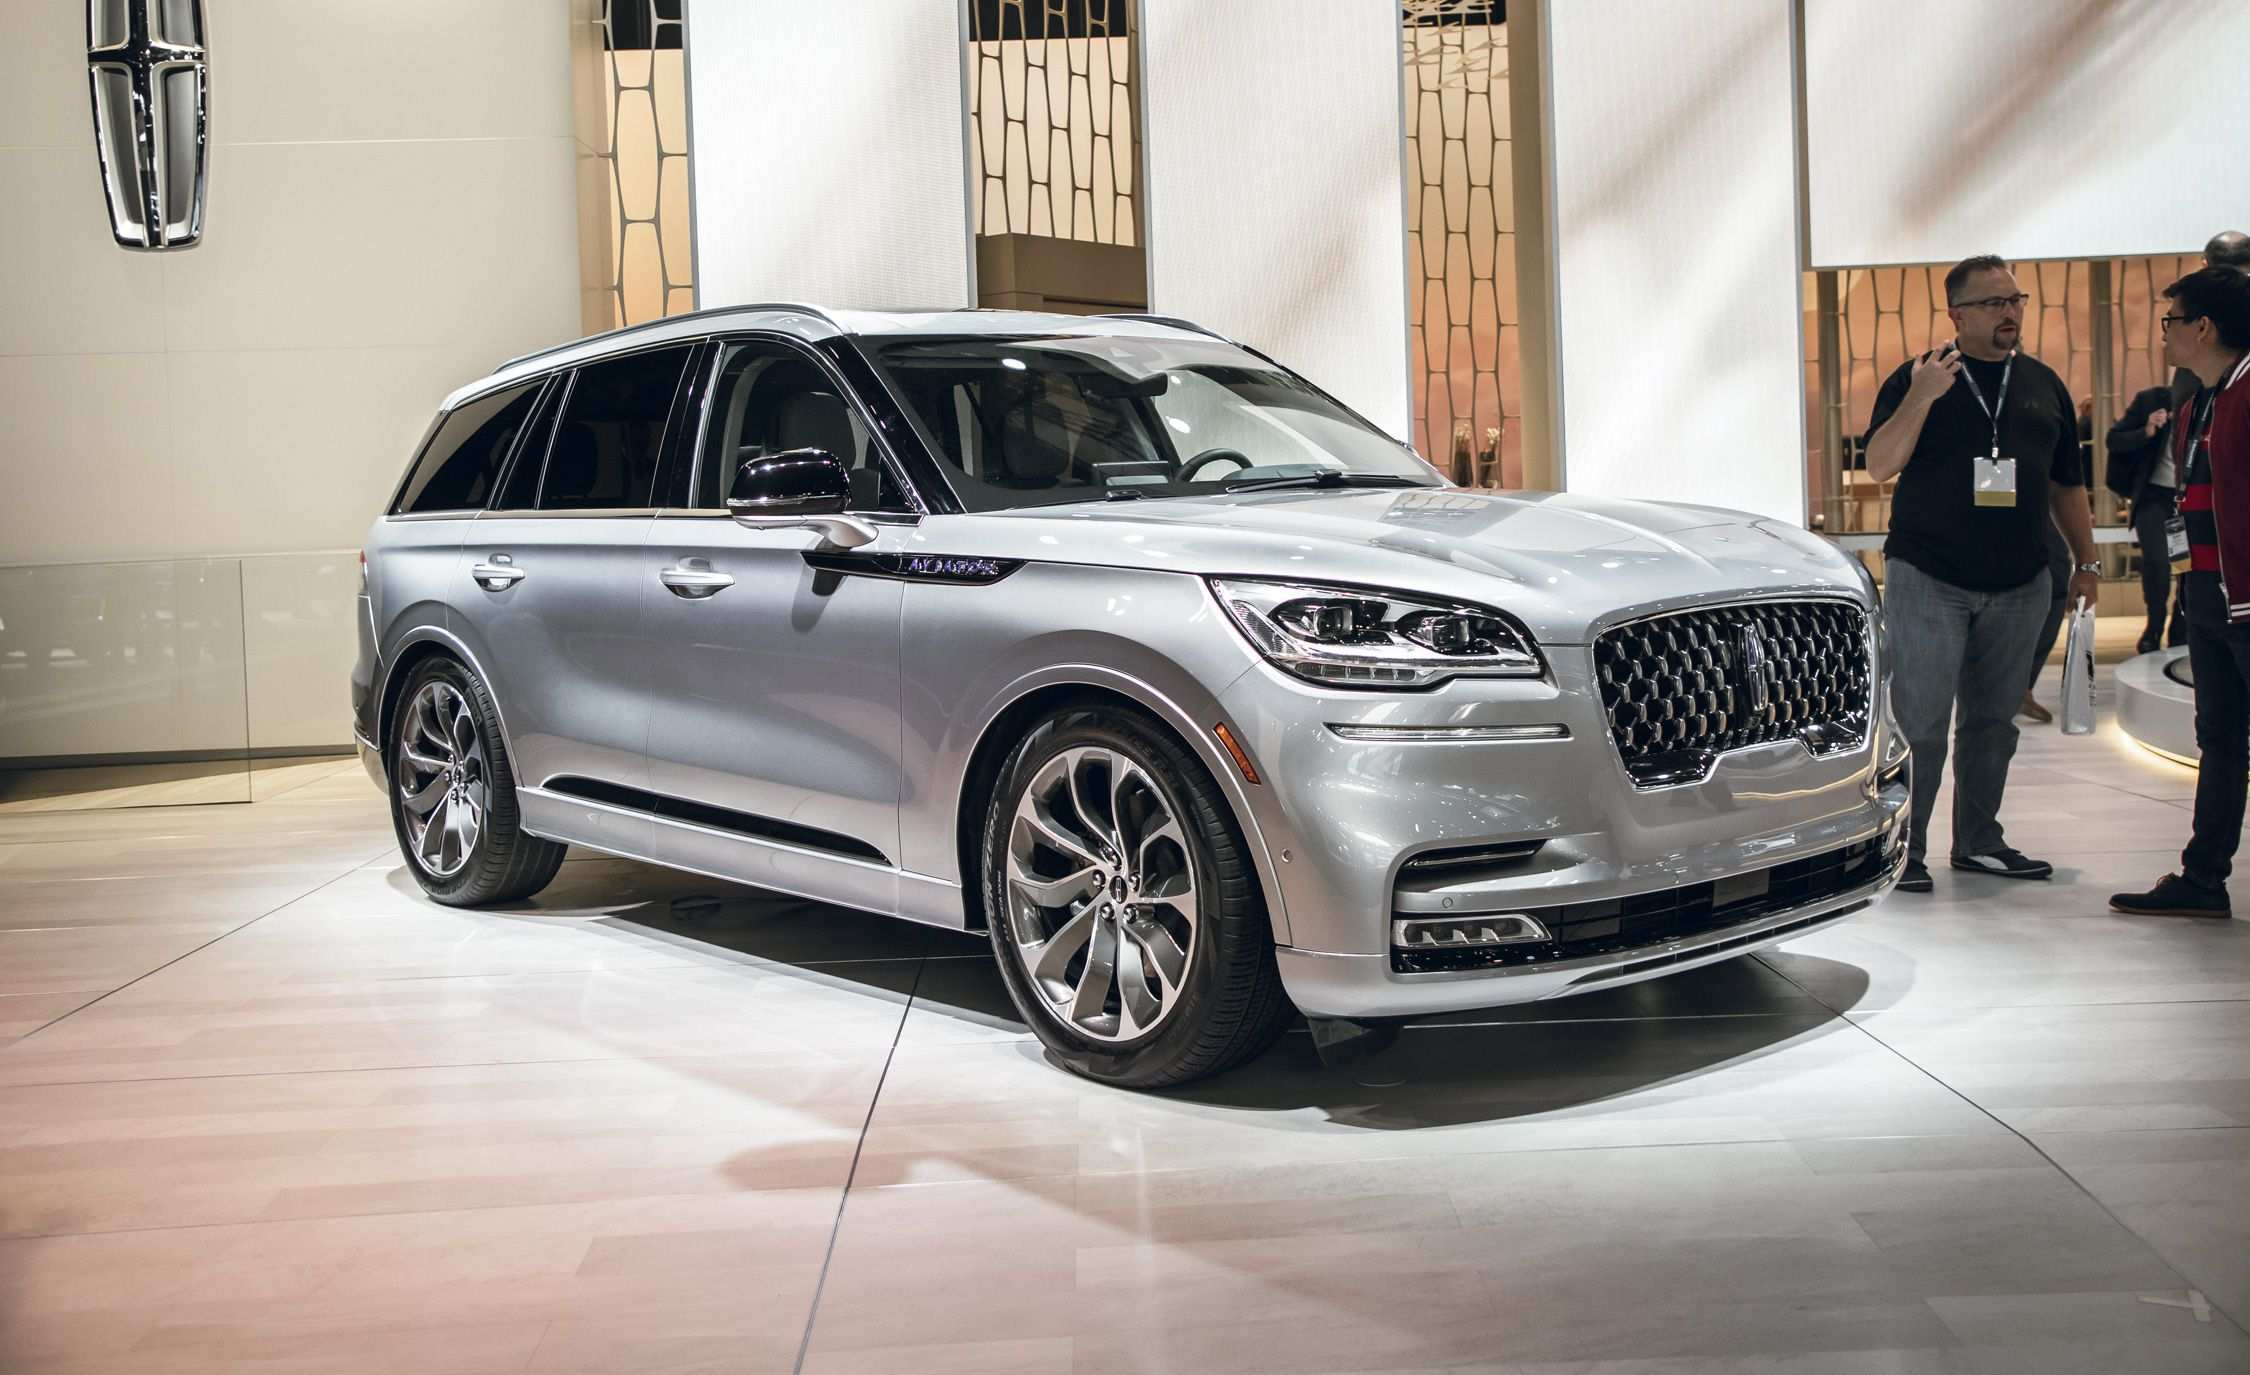 44 New 2020 Lincoln Navigator Review with 2020 Lincoln Navigator